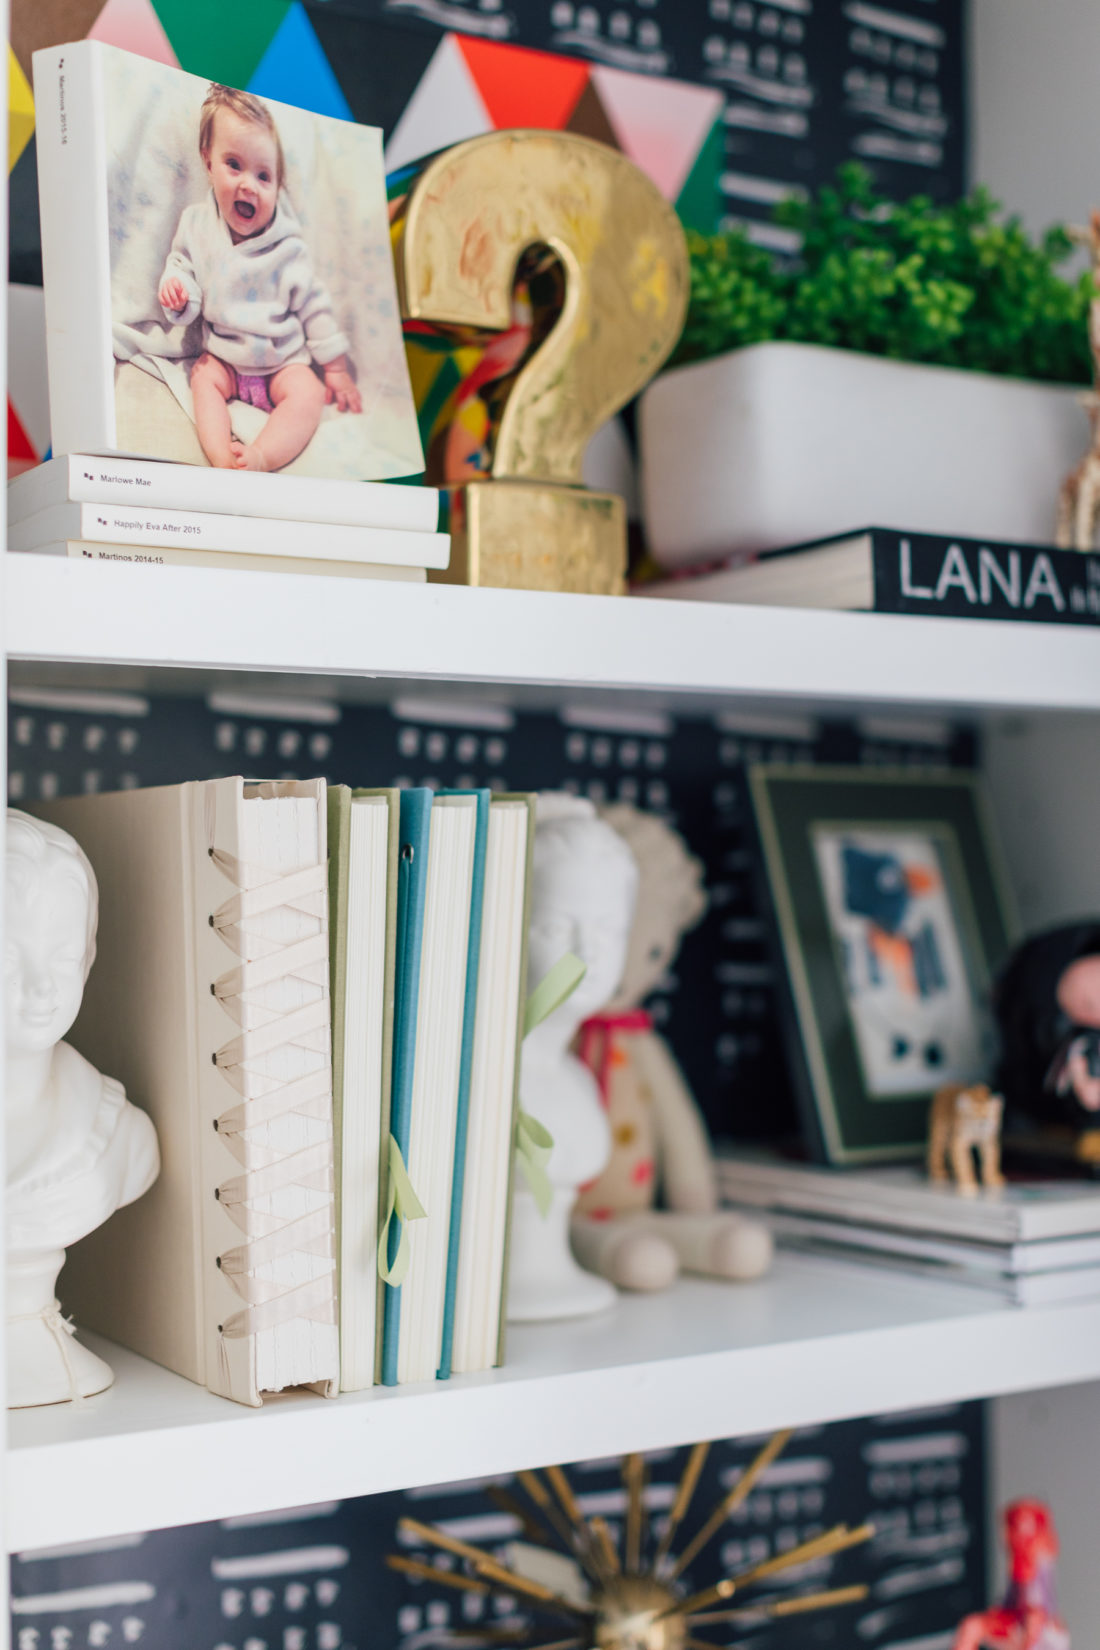 Details on the shelves of the playroom in Eva Amurri Martino's newly renovated Westport CT home